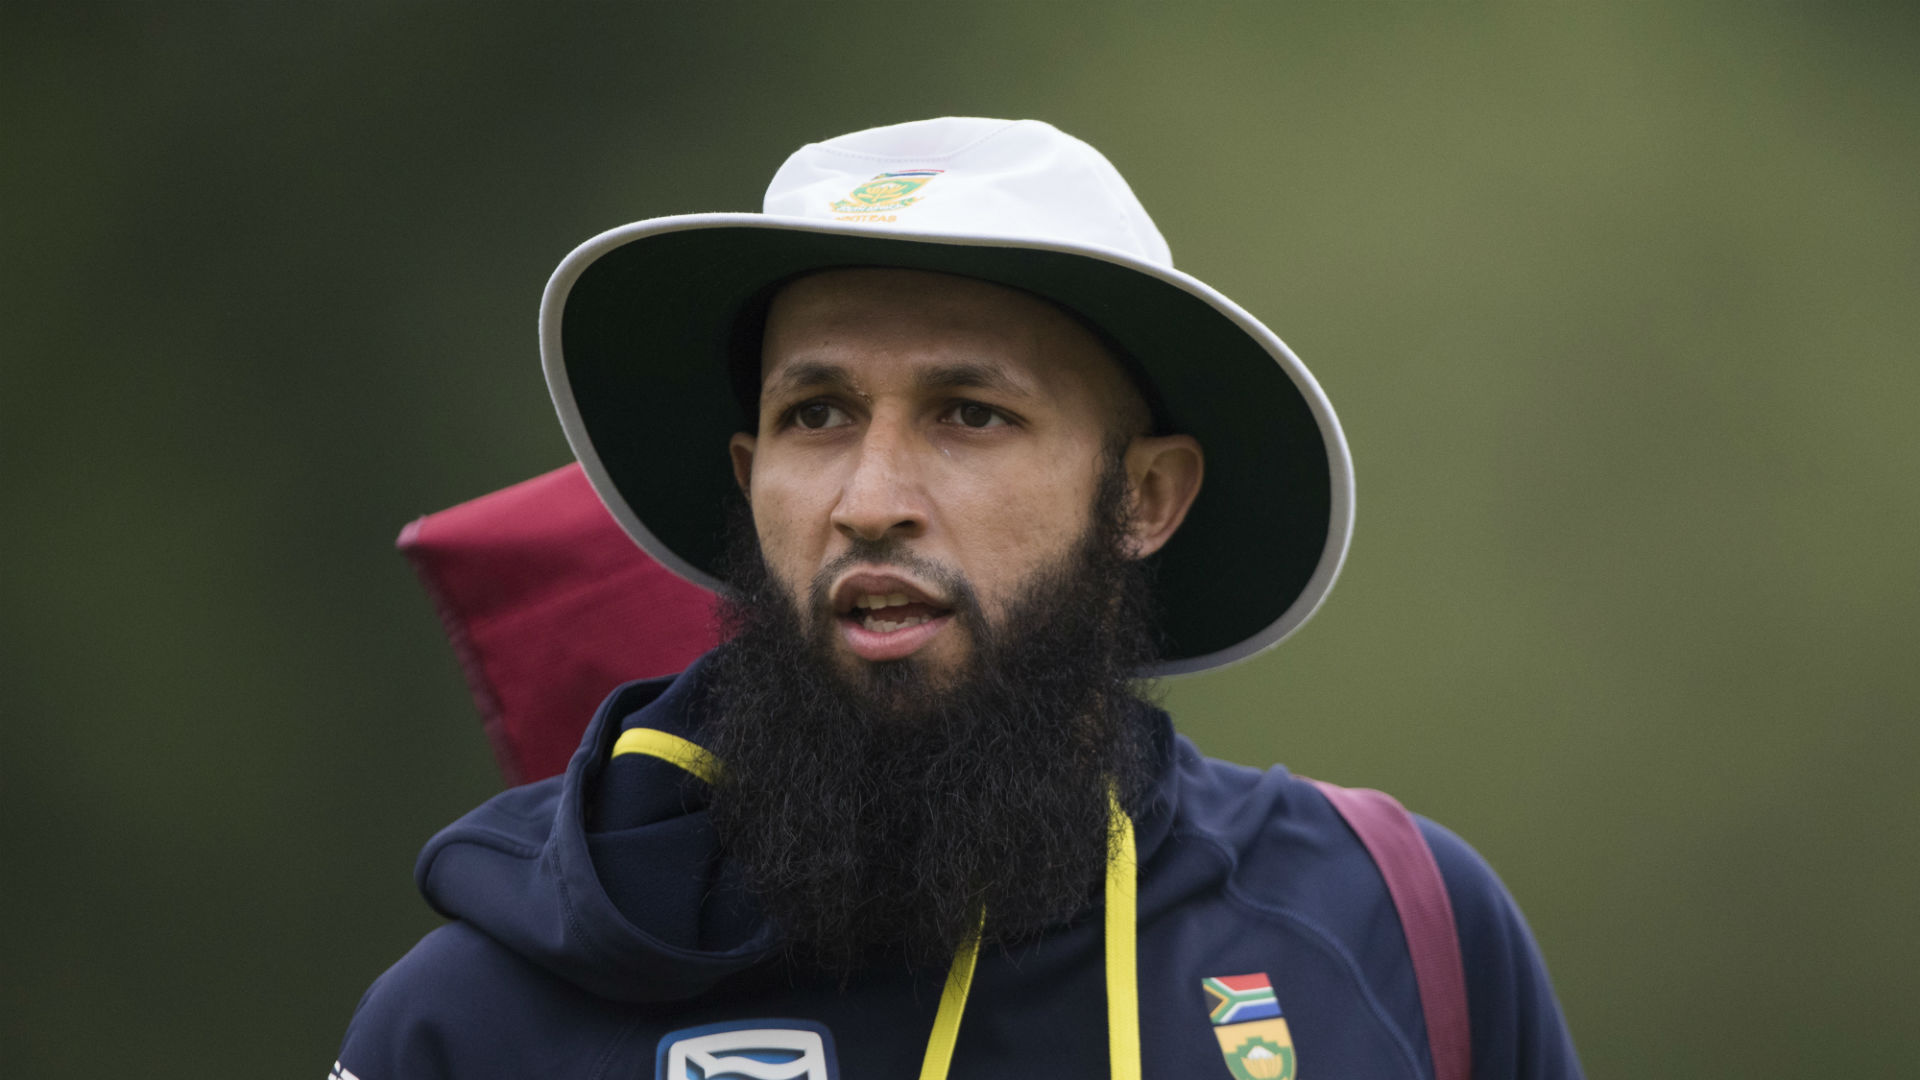 Amla pips Hendricks to Proteas World Cup place